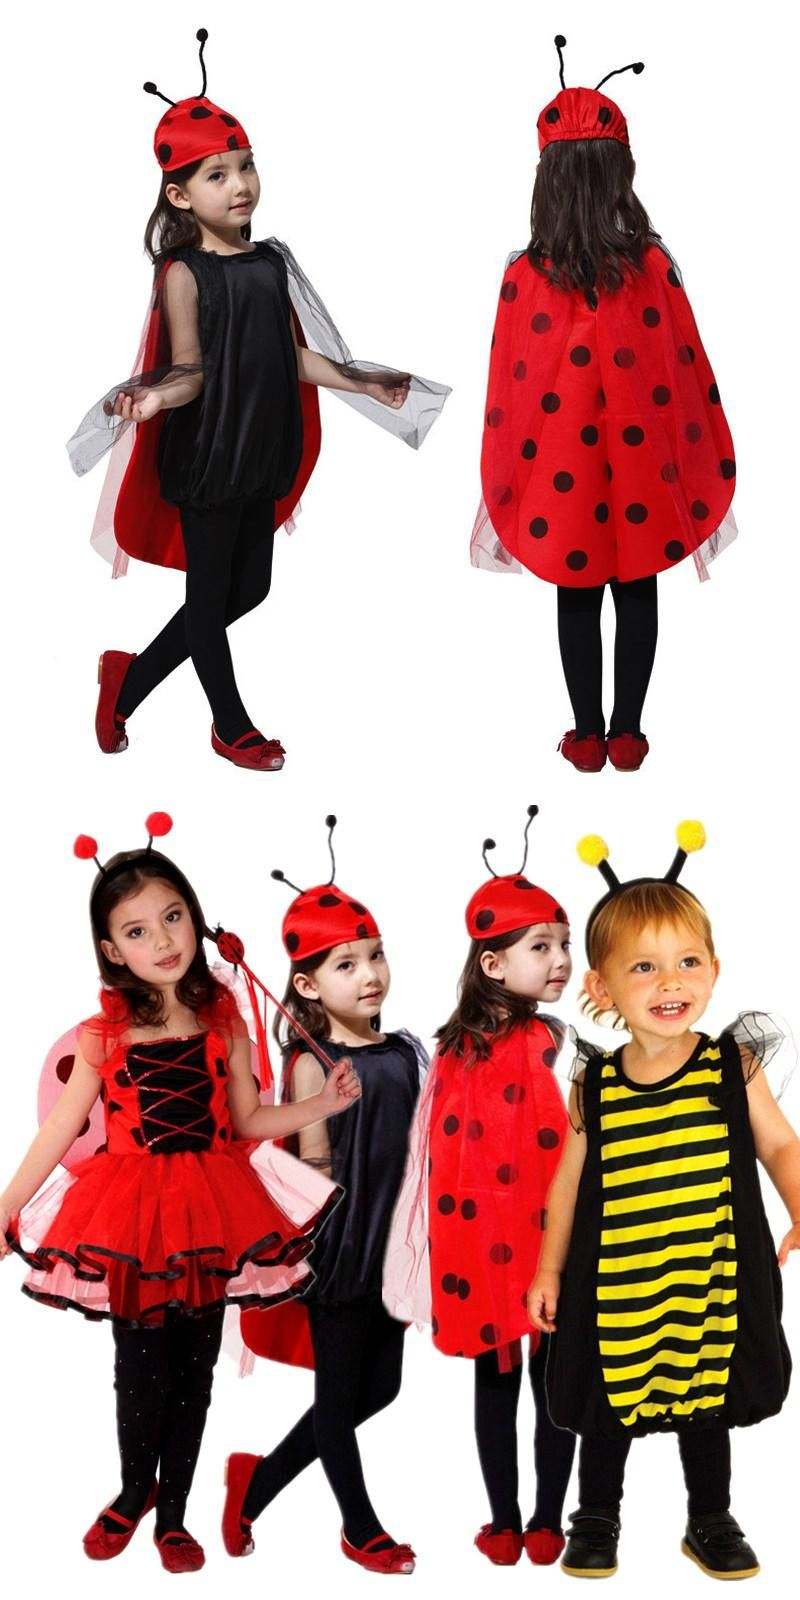 Free Shipping Kids Ladybug Fancy Dress Costumes Children Girls Bee Fairy Cosplay Clothes for Carnival Halloween  sc 1 st  Pinterest & Free Shipping Kids Ladybug Fancy Dress Costumes Children Girls Bee ...